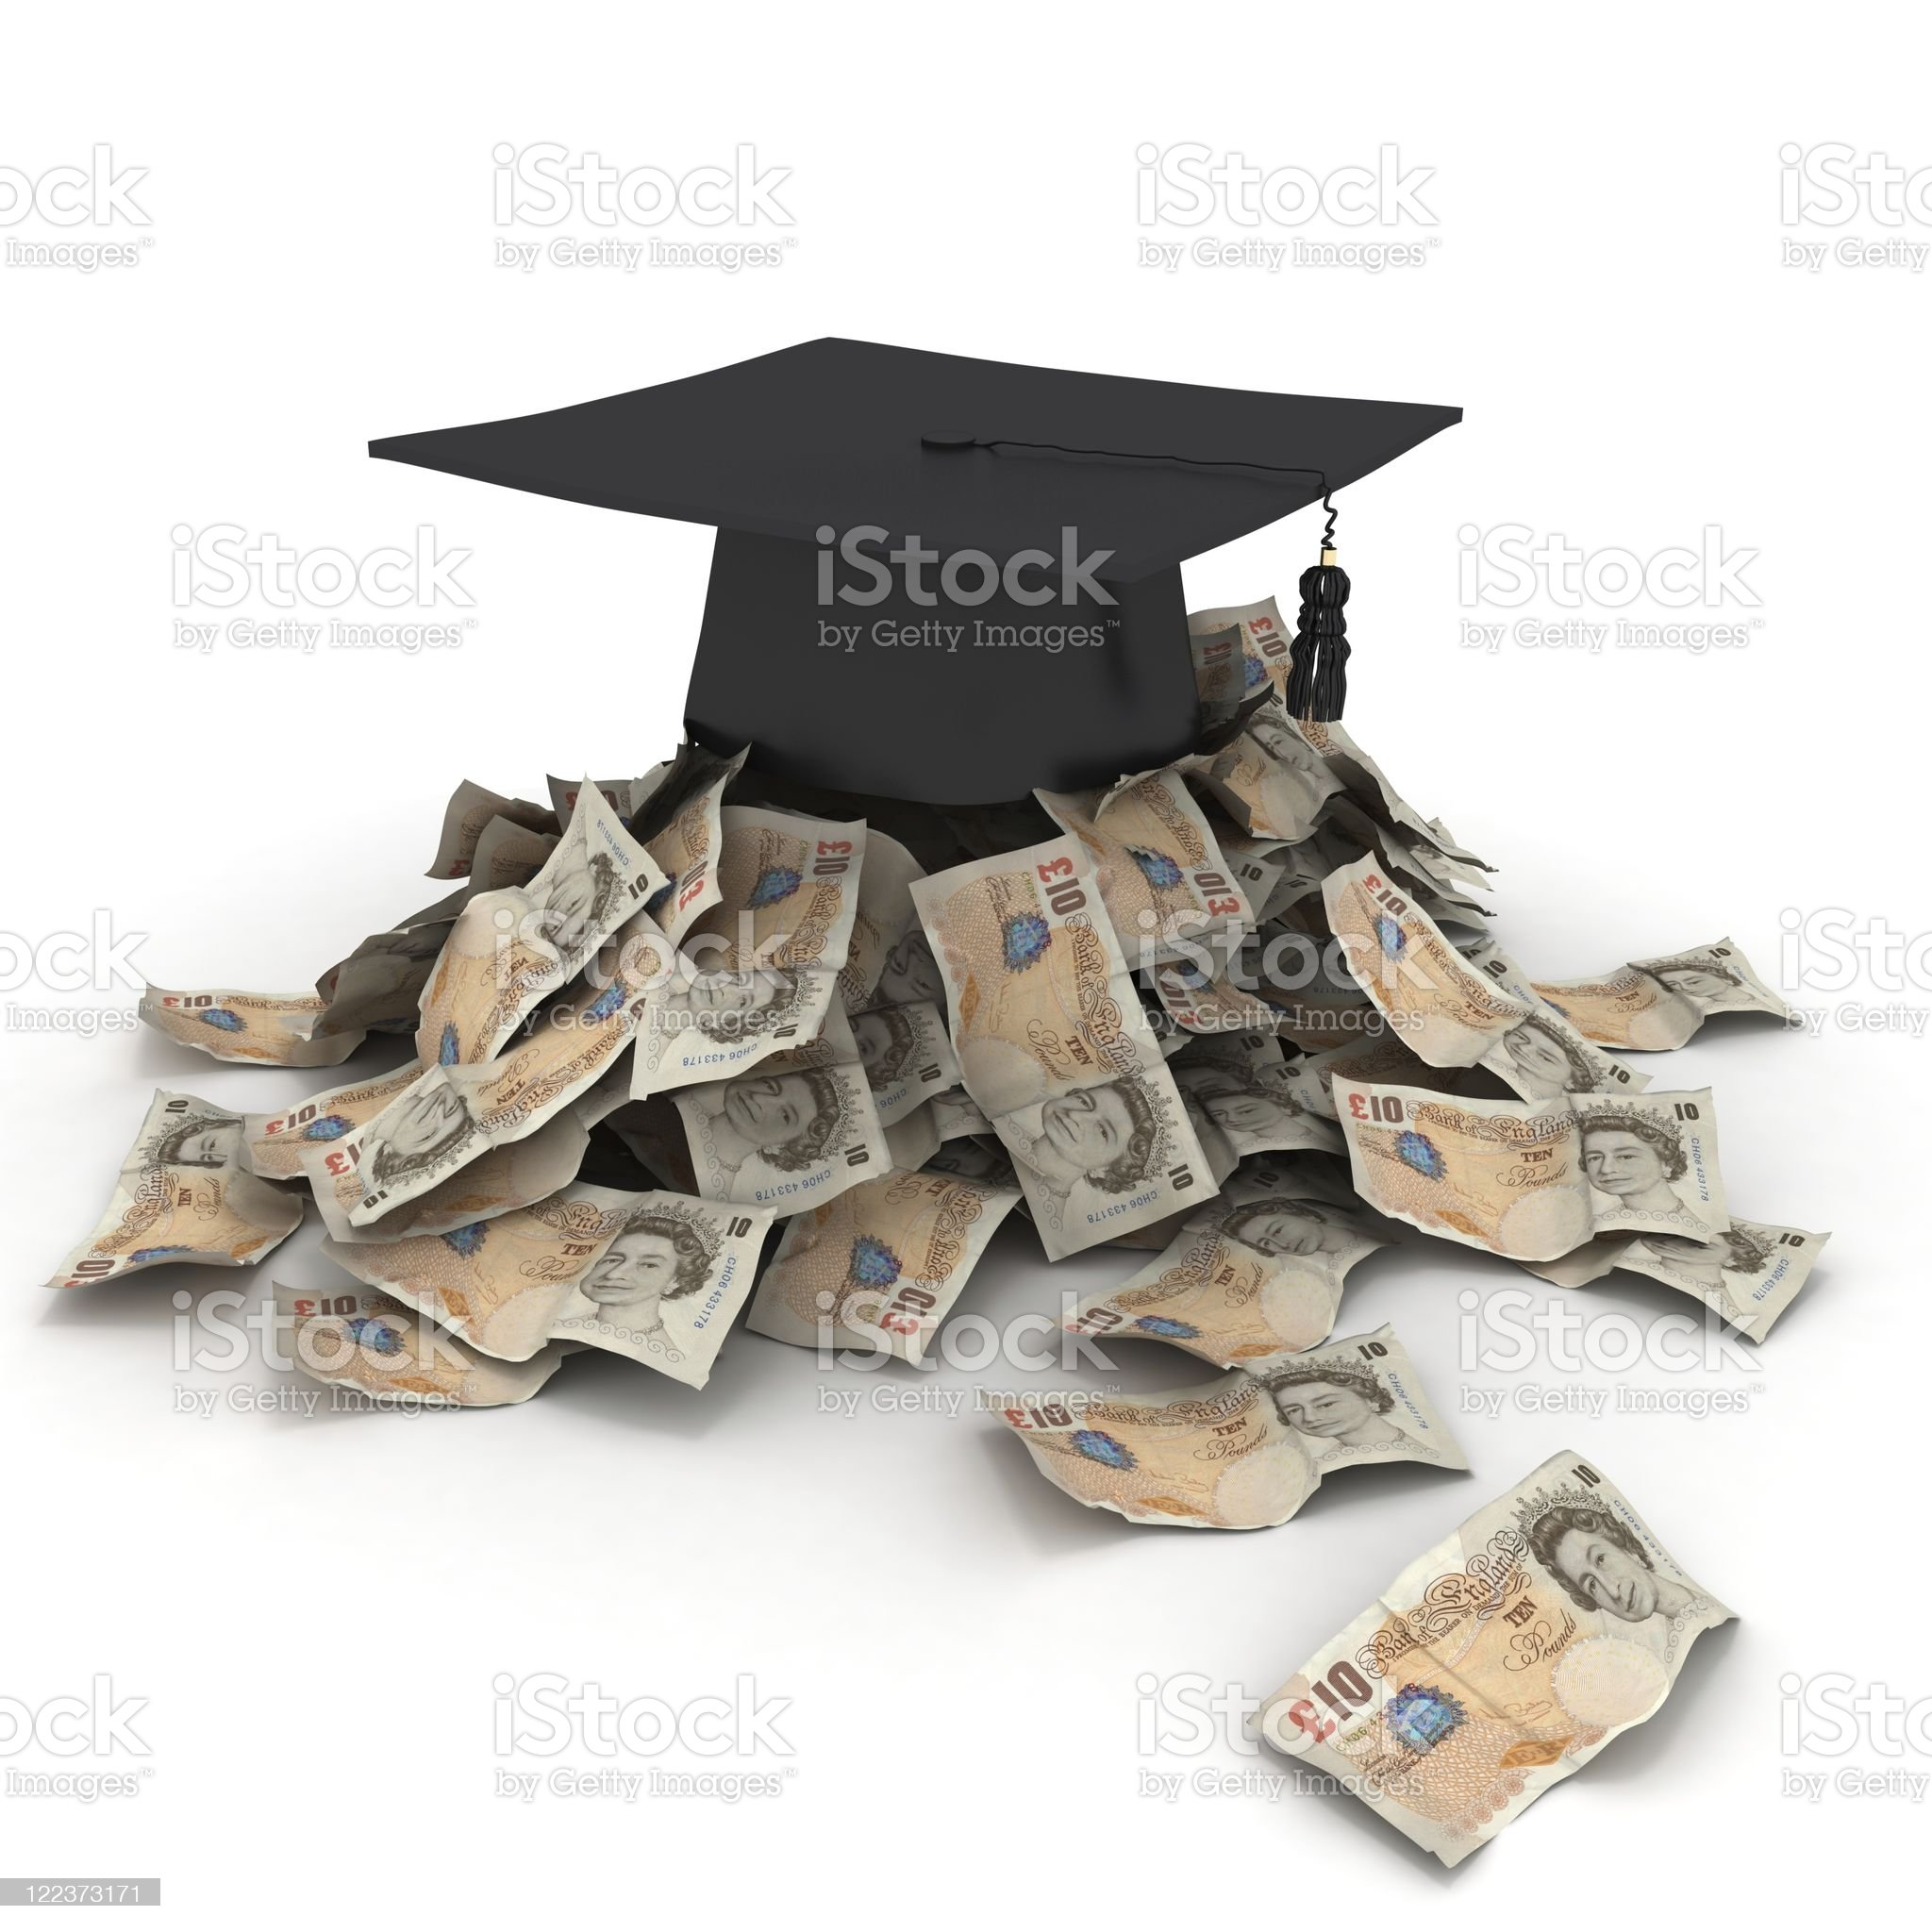 Education Costs - Pounds royalty-free stock photo